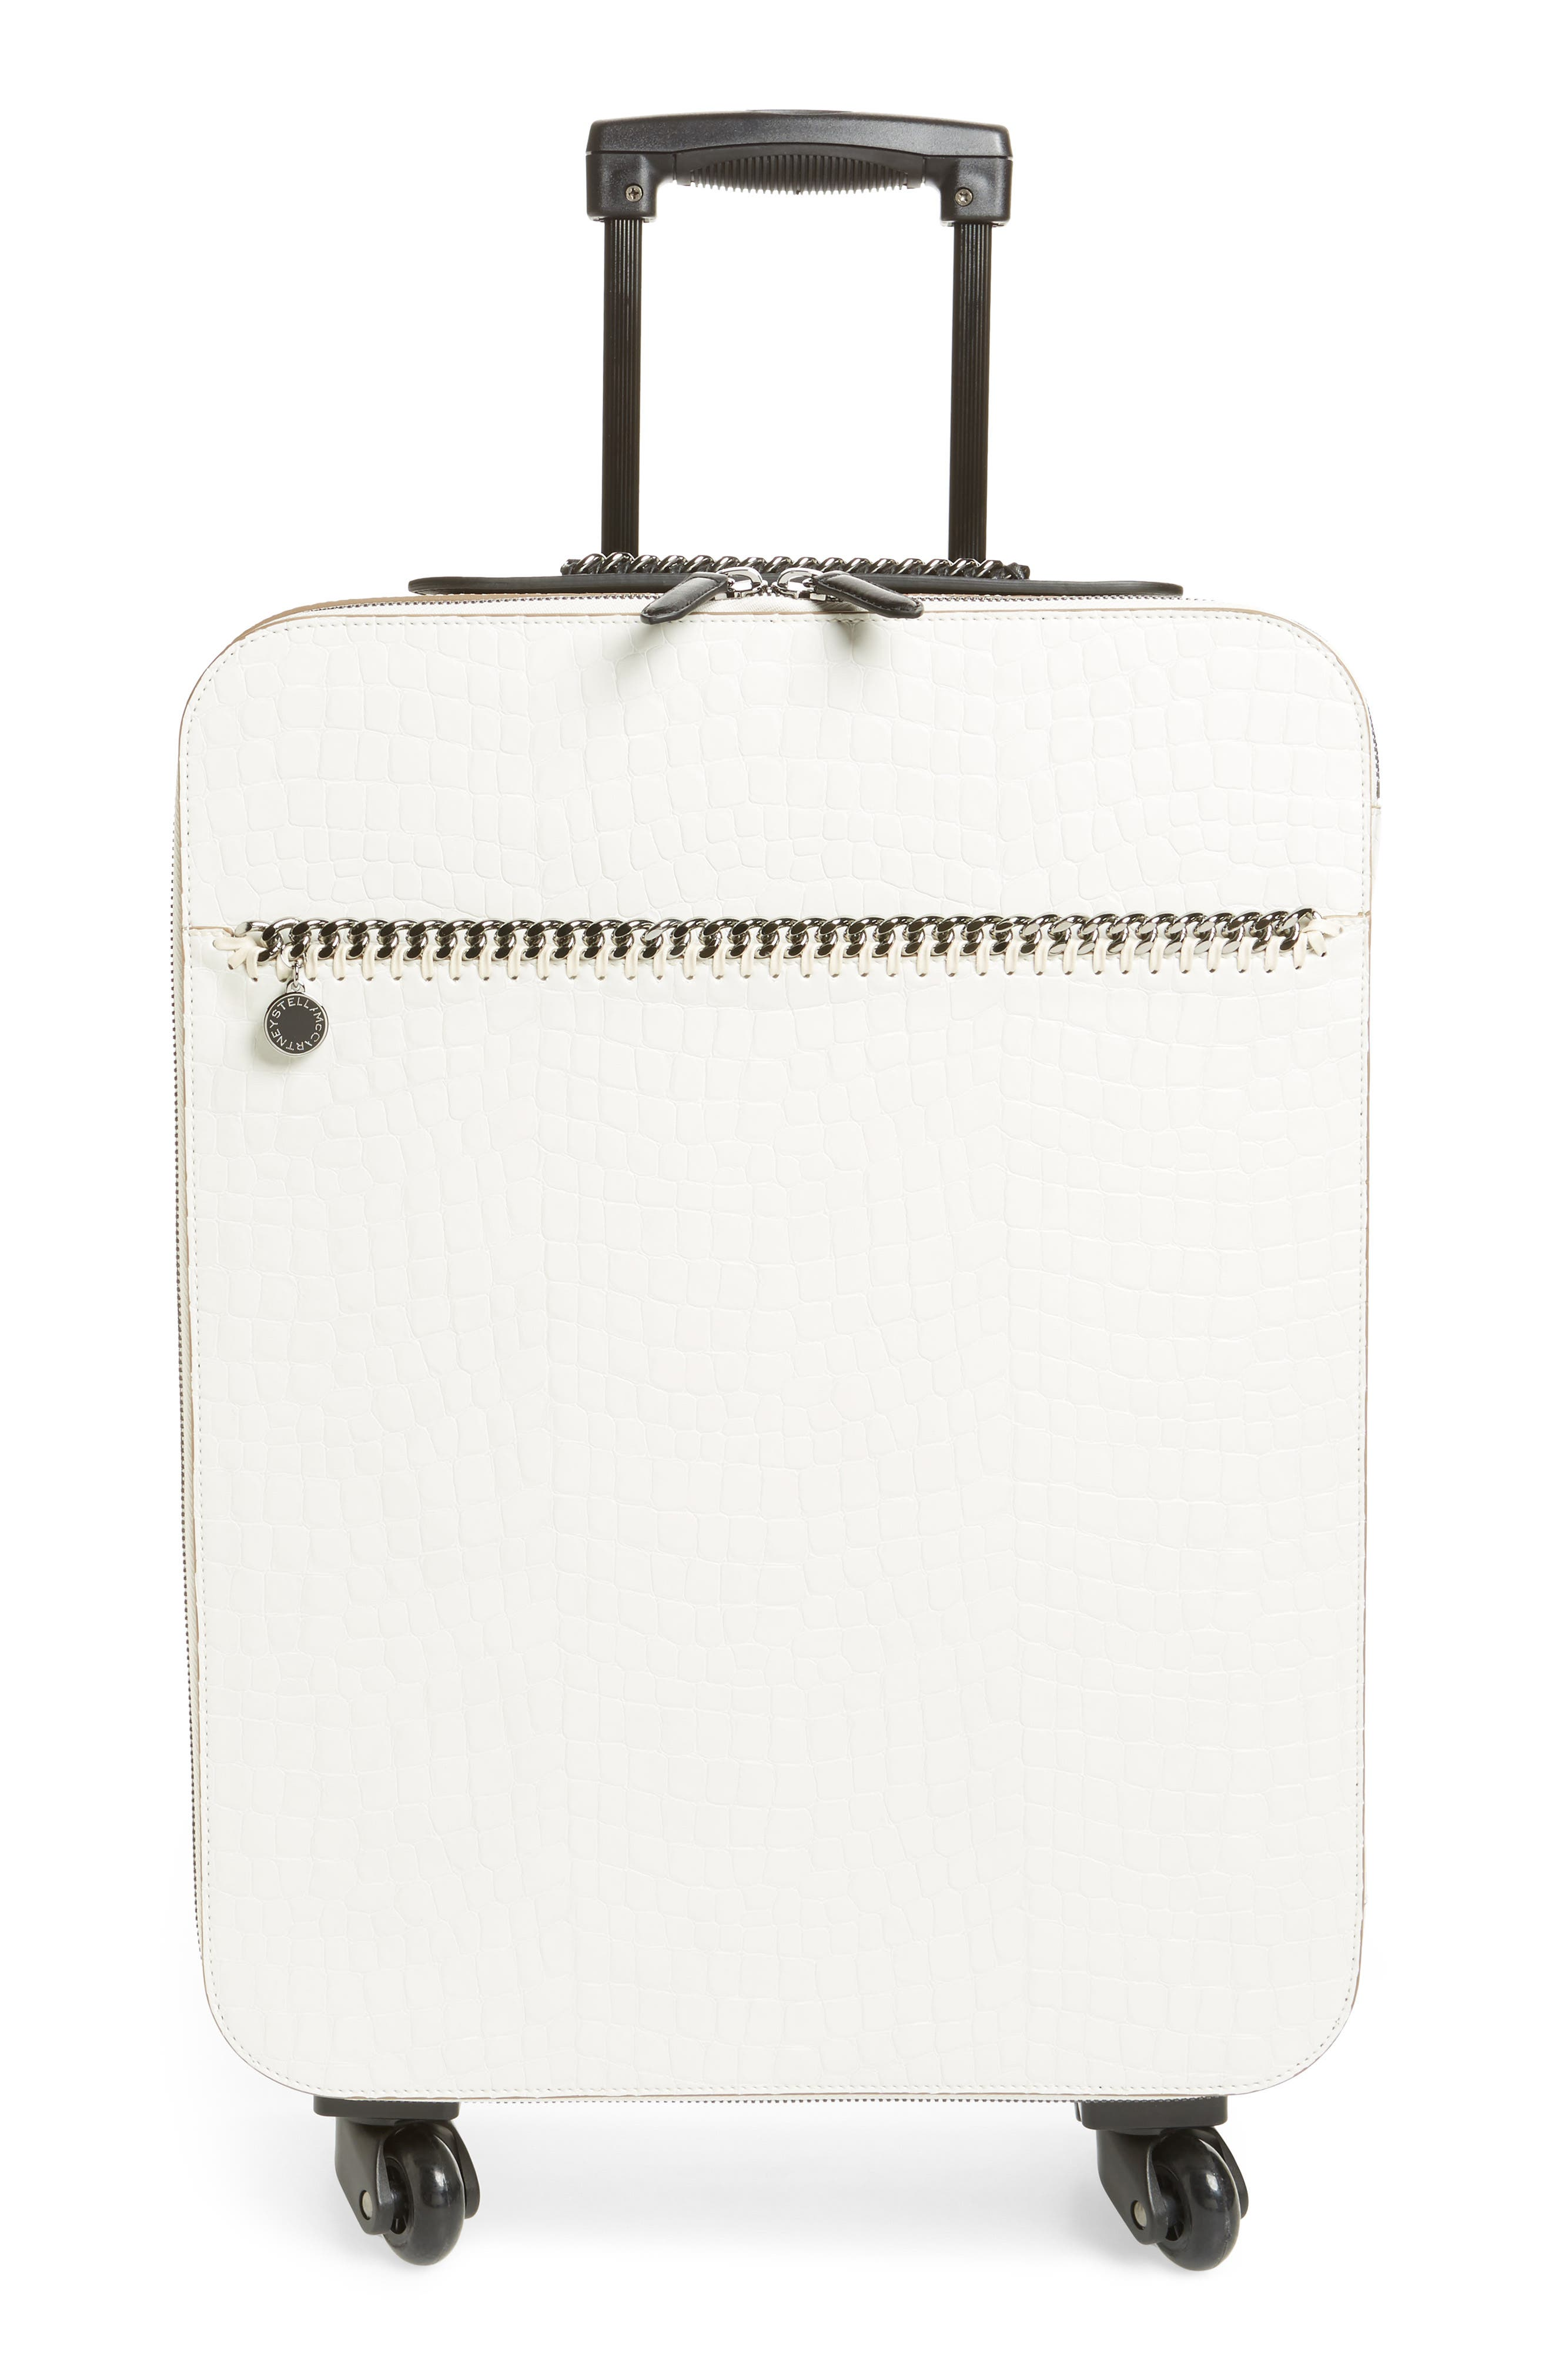 20-Inch Alter Croc Faux Leather Trolley Case,                             Main thumbnail 1, color,                             Ivory